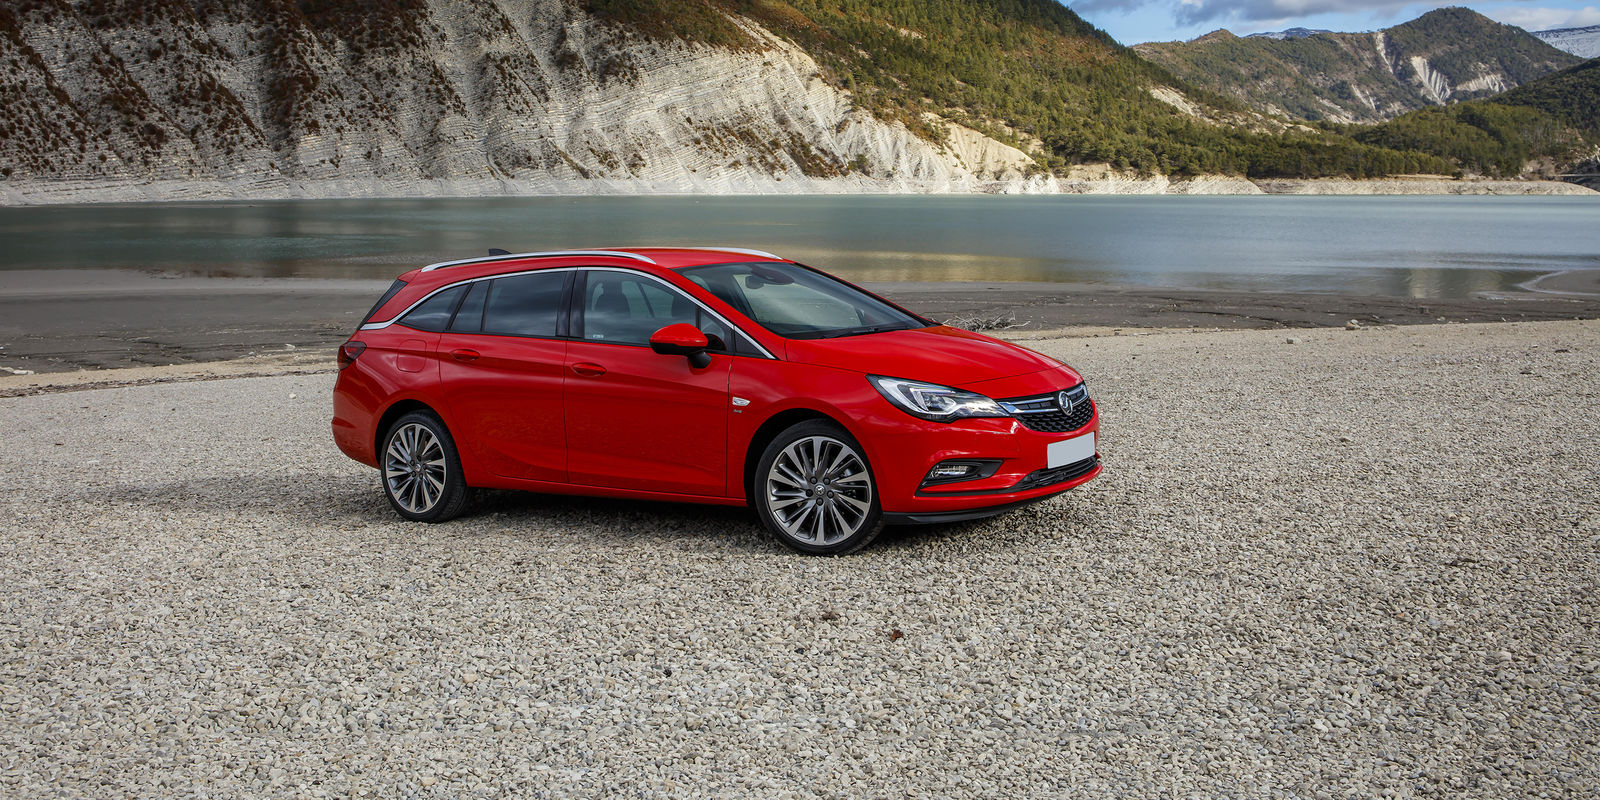 vauxhall astra sports tourer review deals carwow. Black Bedroom Furniture Sets. Home Design Ideas